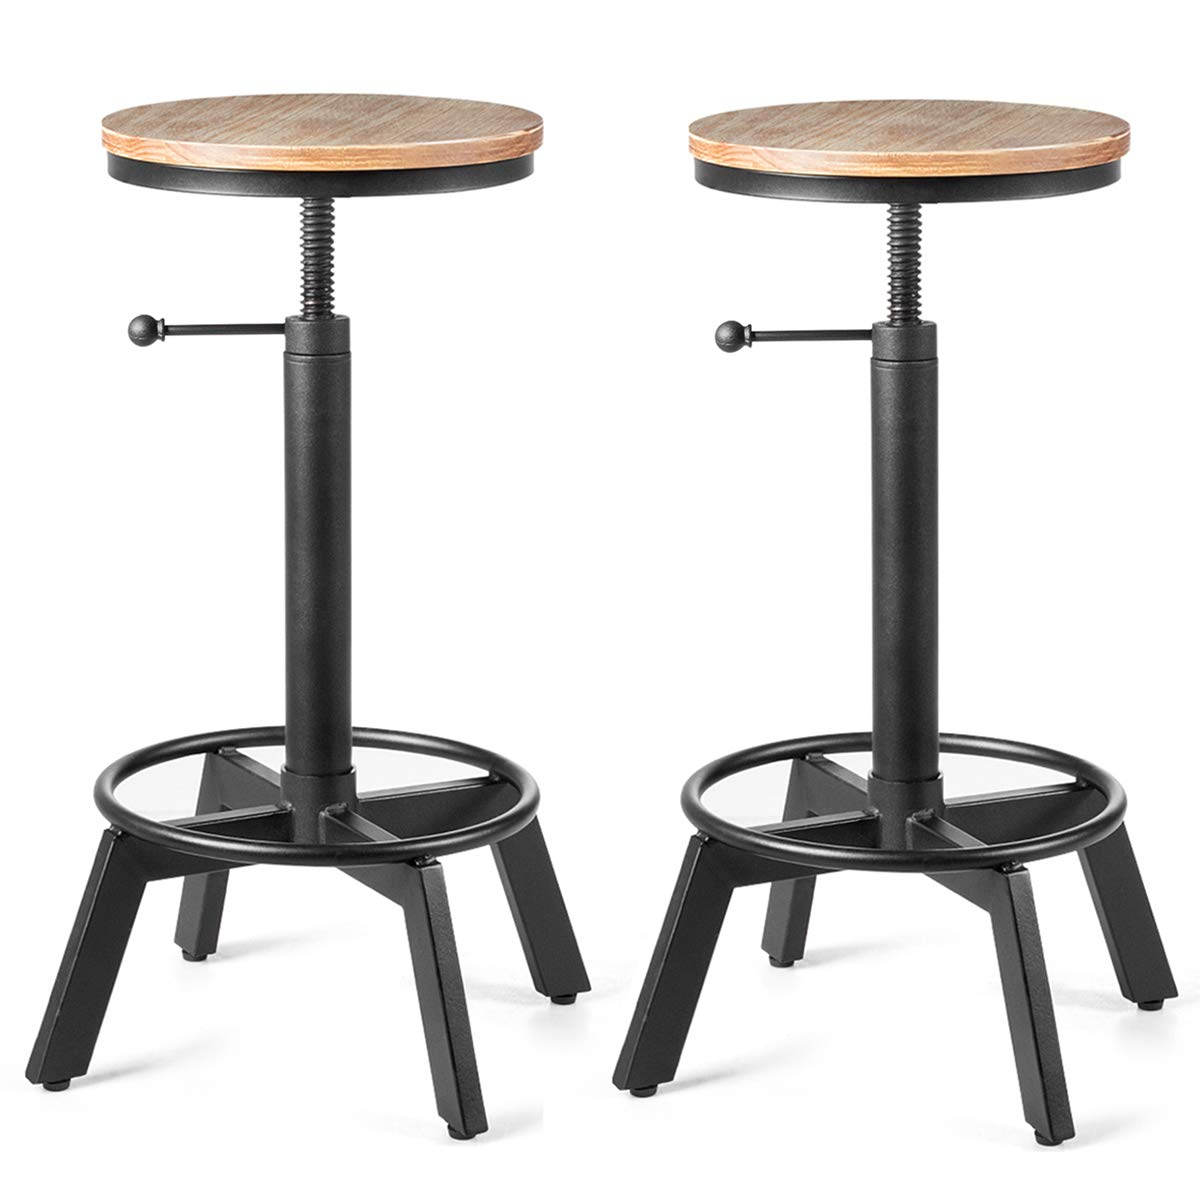 COSTWAY Industrial Bar Stool, Antique Vintage Round Stool, 33-Inch Height Adjustable Backless Swivel Counter Furniture Metal, Modern Wooden Barstools, Ideal for Cafe, Pub, Home Black, Set of 2